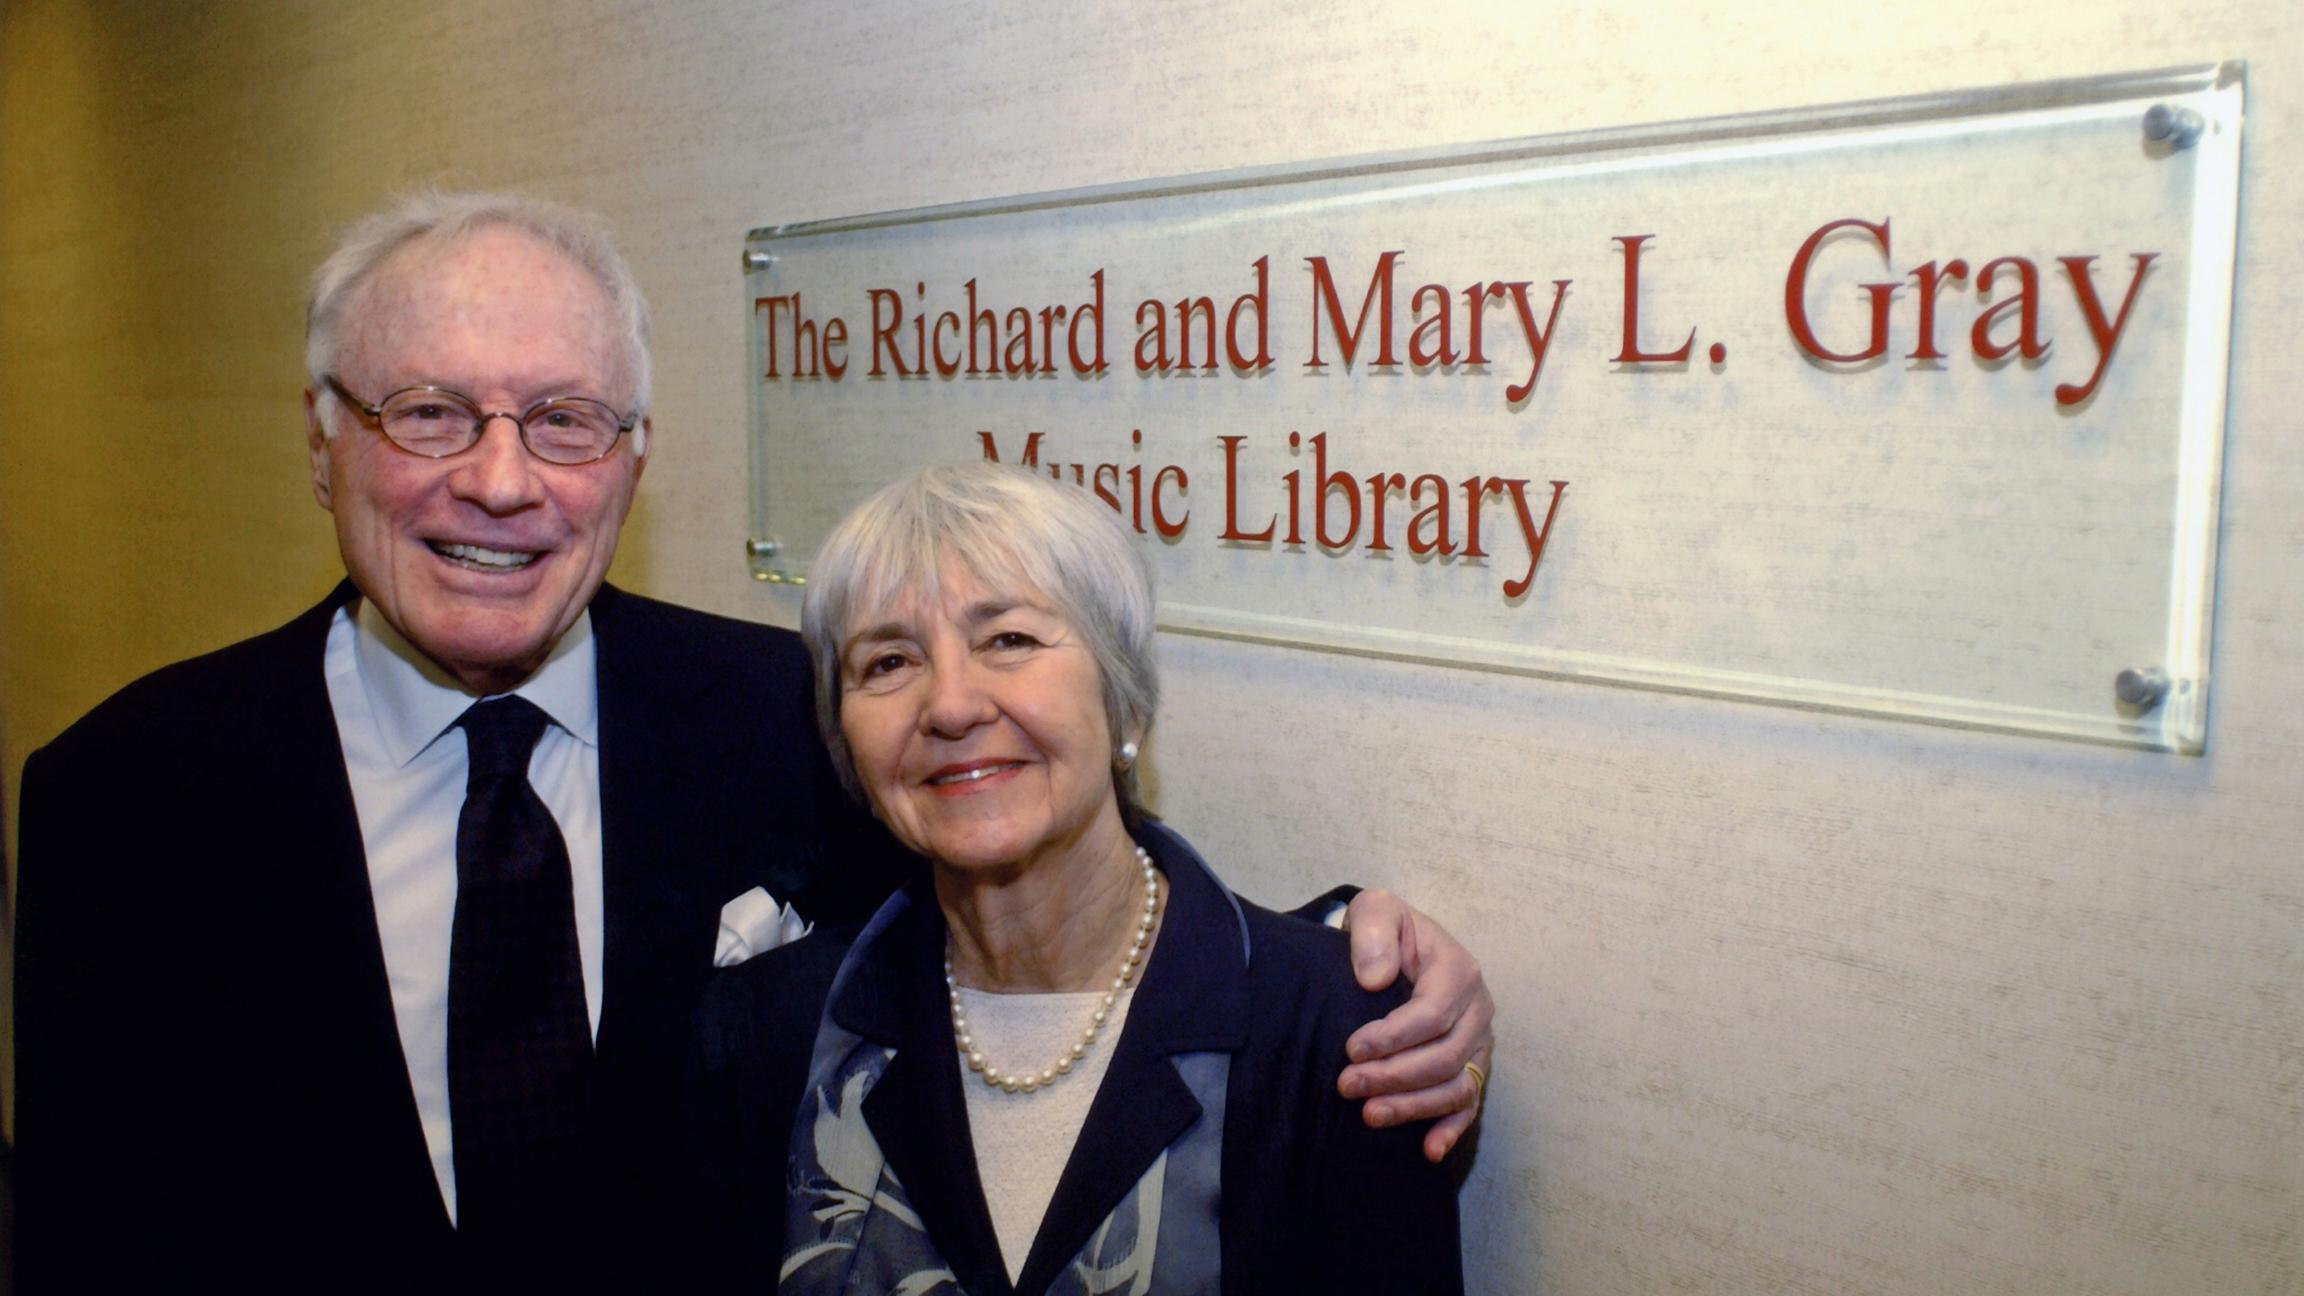 WFMT's music library is named for Richard and Mary Gray.